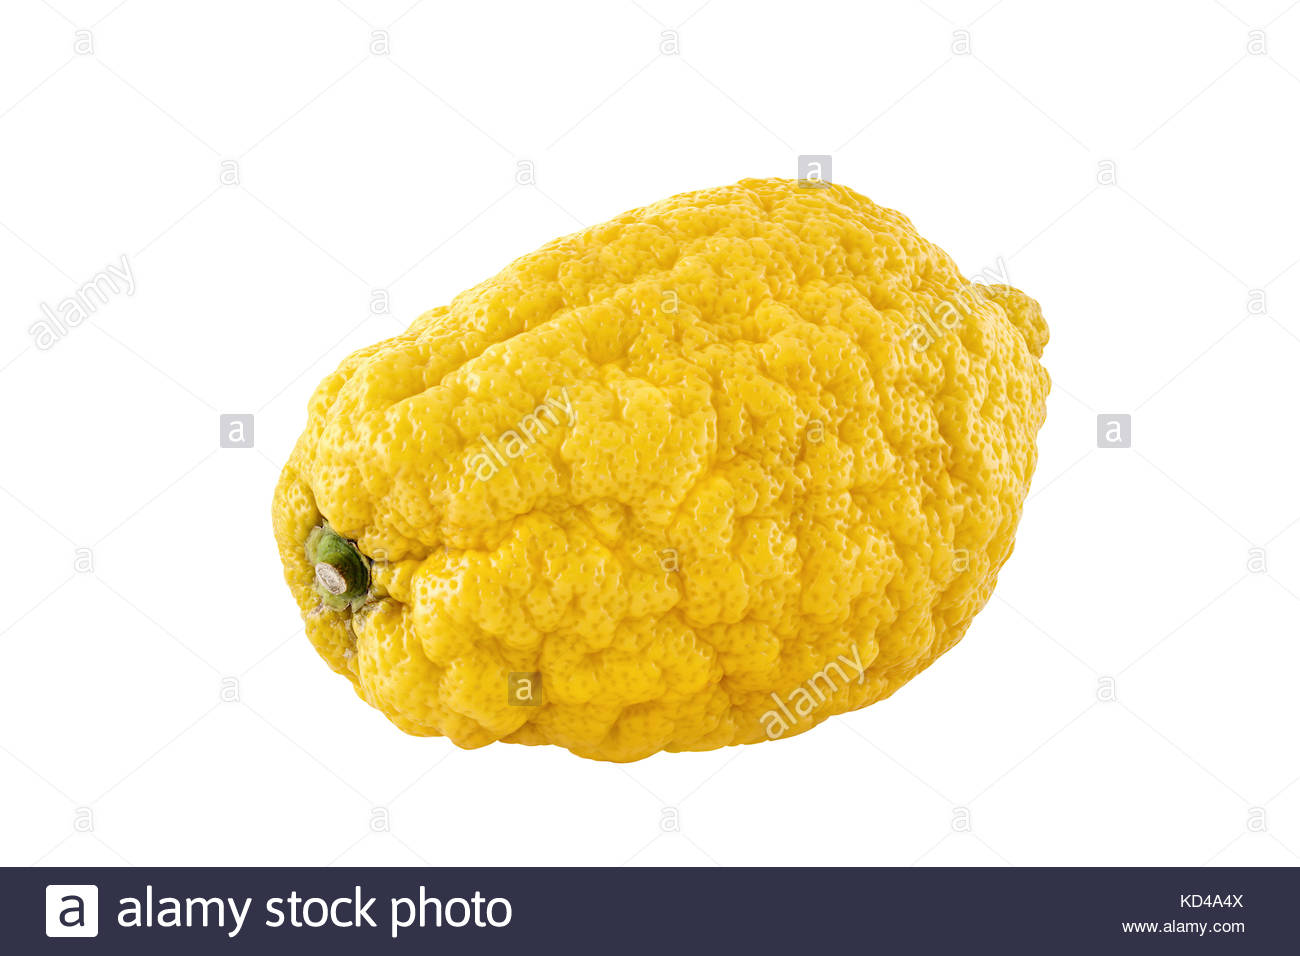 A citron fruit reflected on a white background. Citrons are available all year round. They are a versatile ingredient - Stock Image